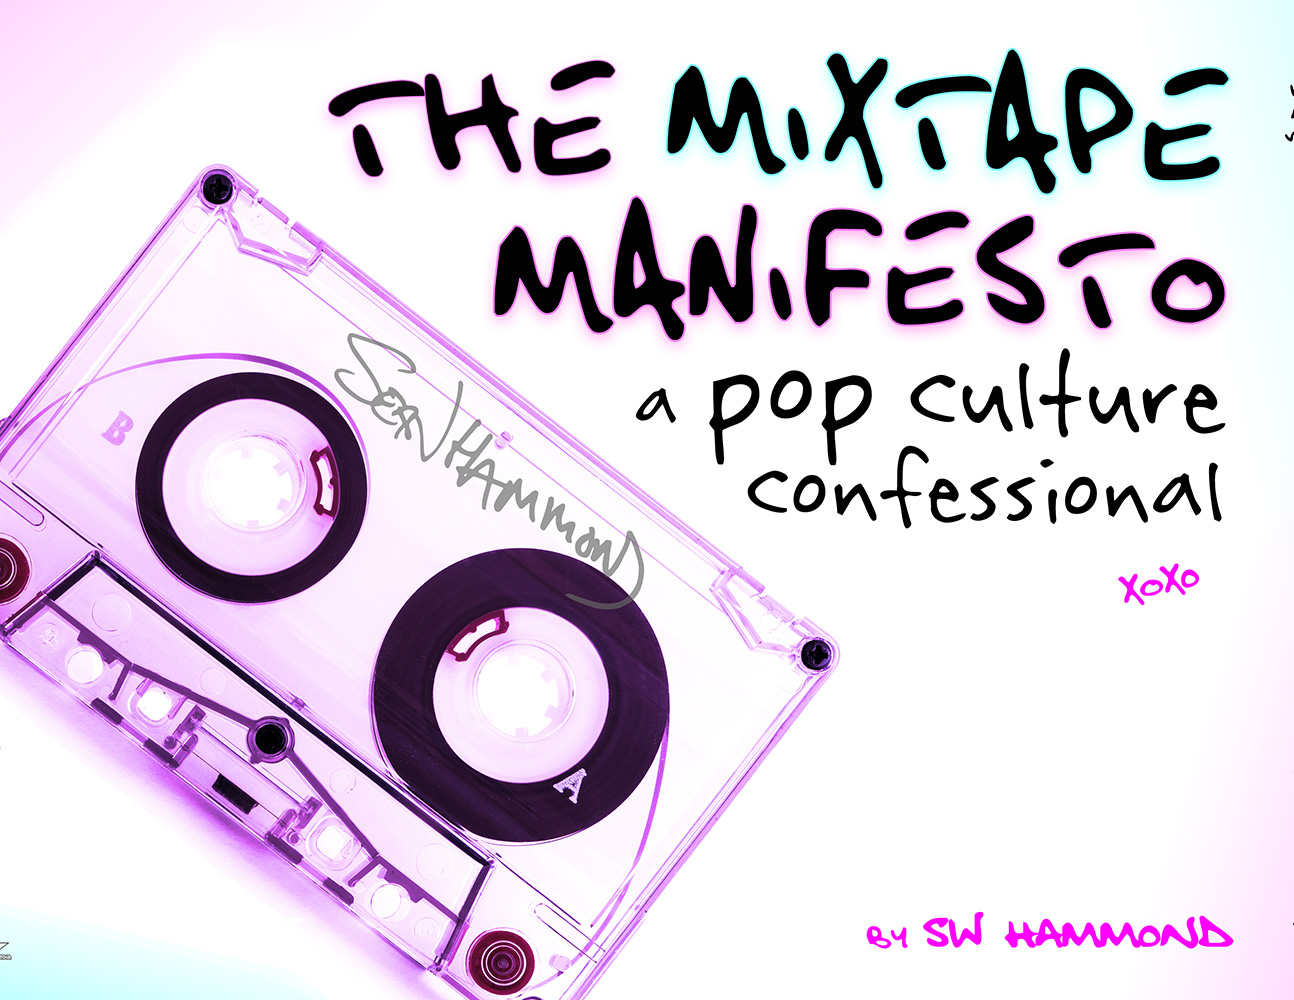 The Mixed Tape Manifesto: A Pop Culture Confessional